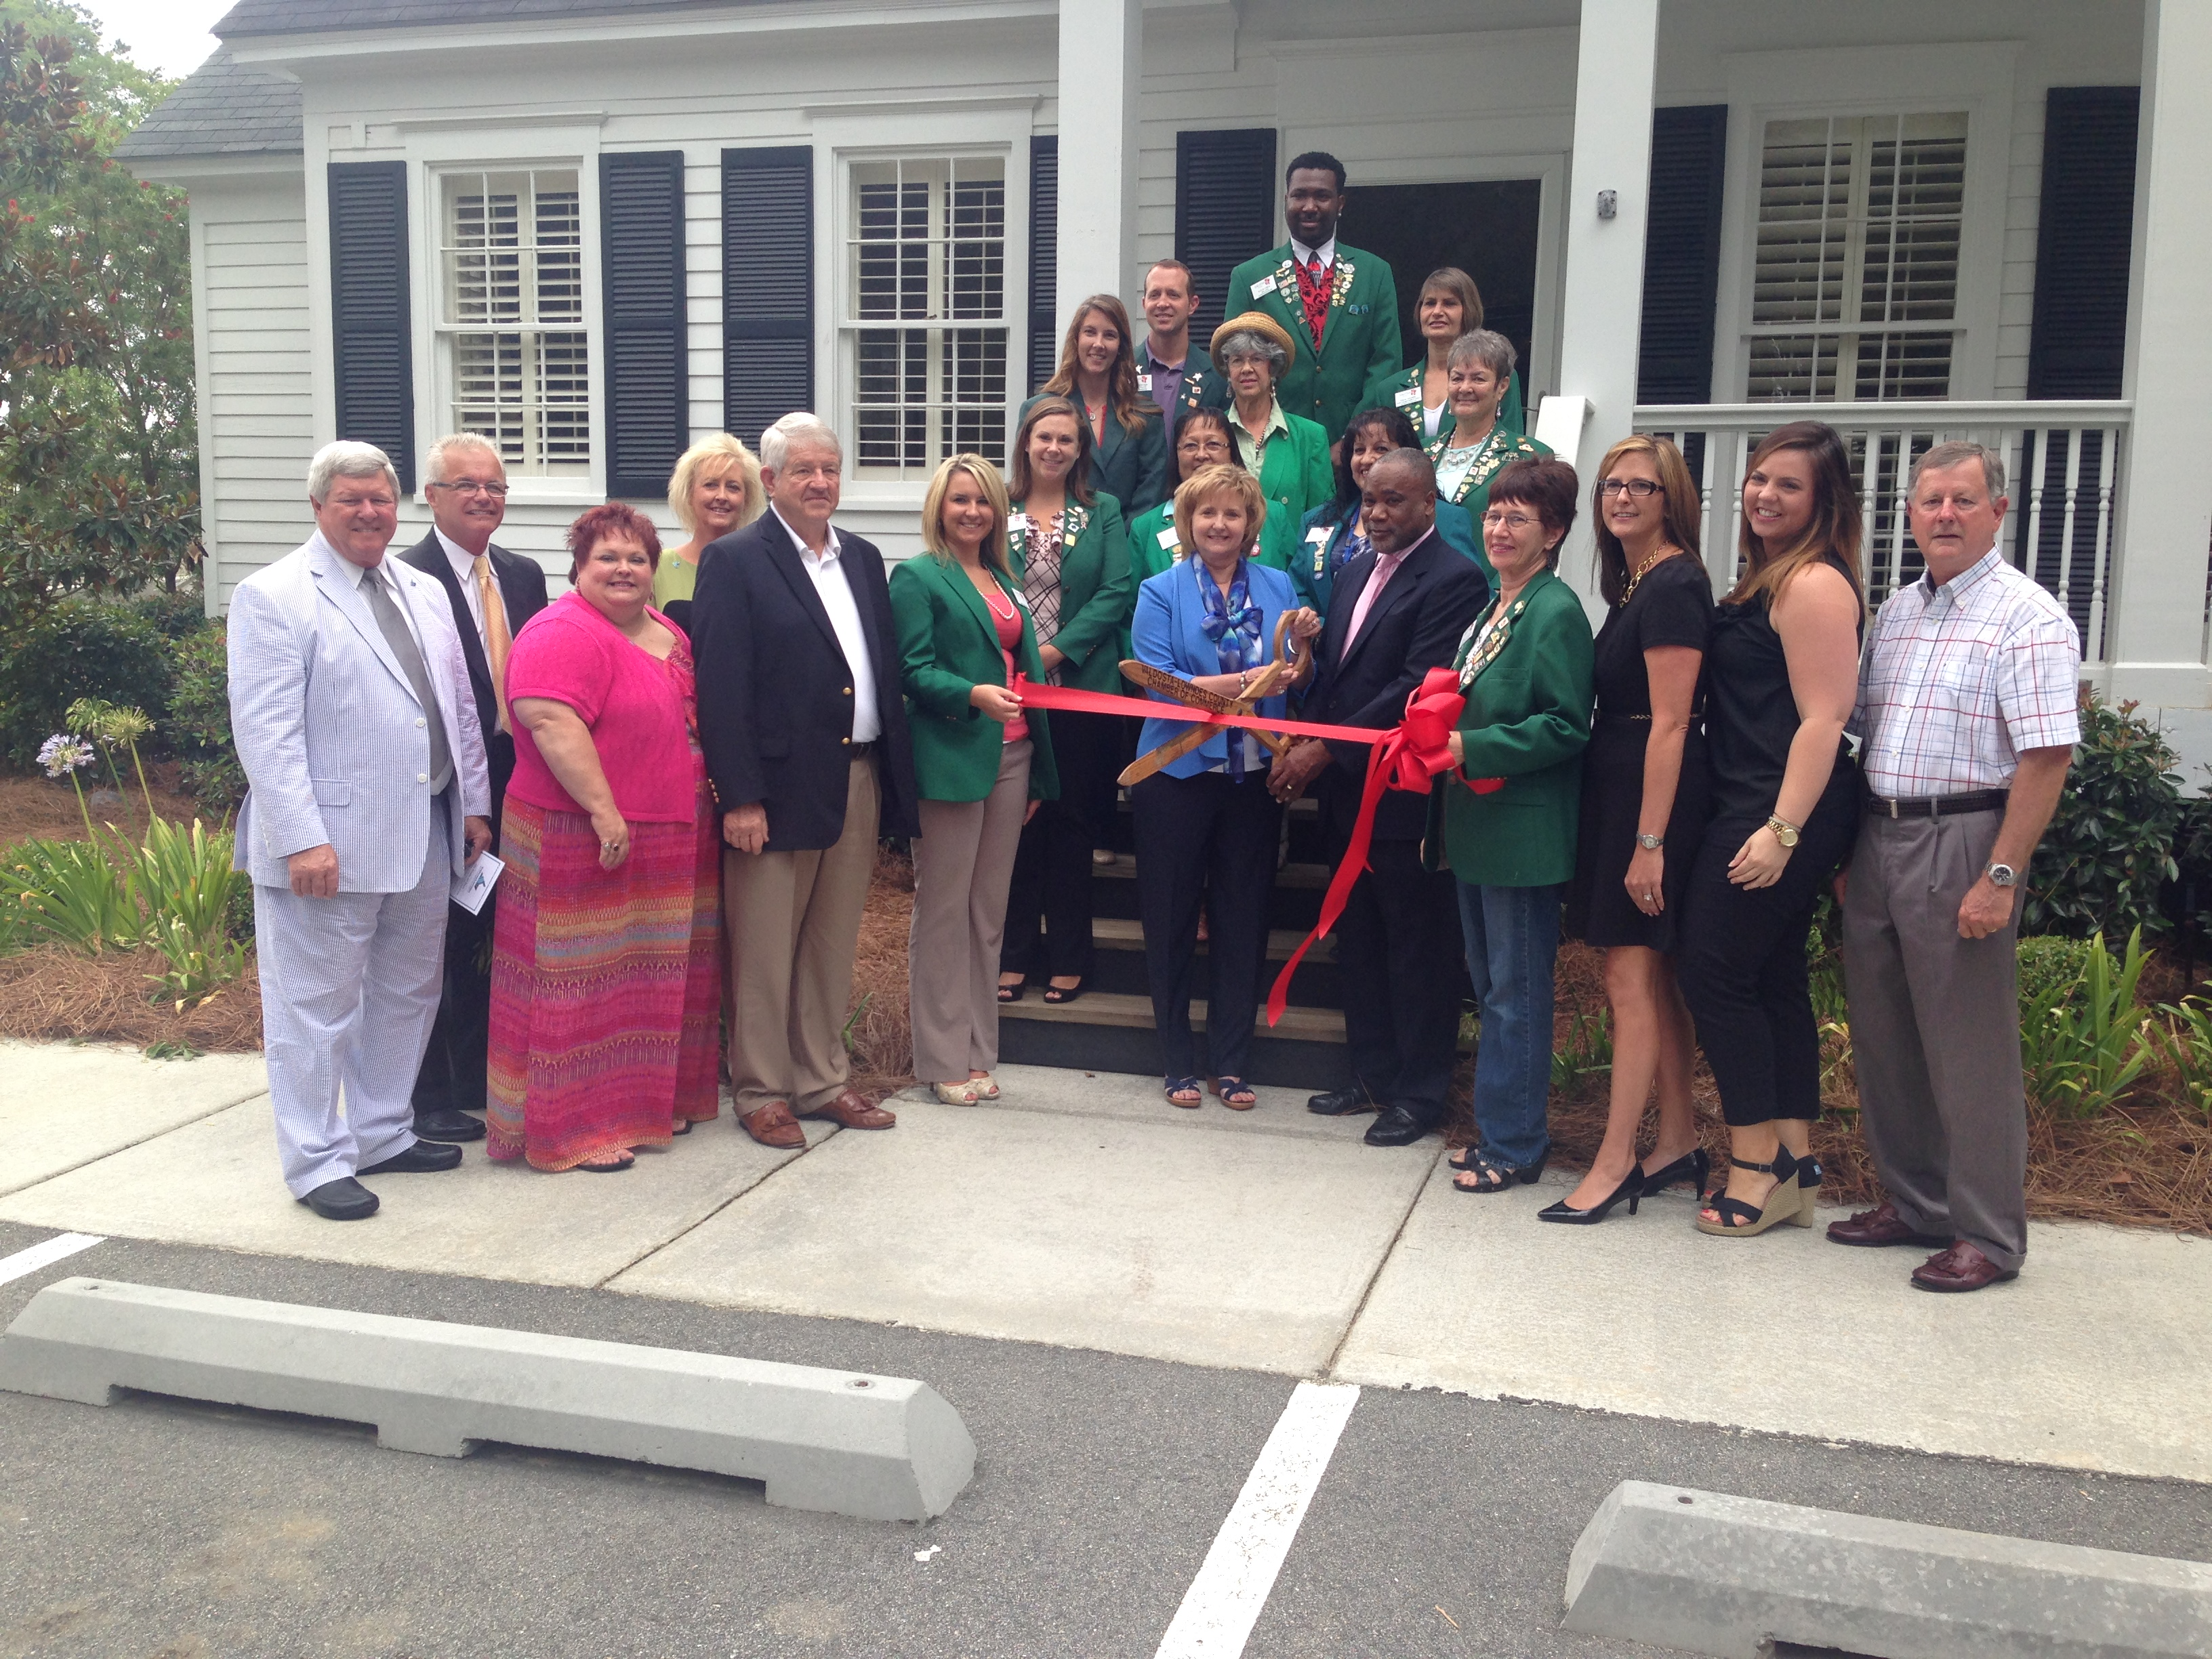 VALDOSTA-LOWNDES DEVELOPMENT AUTHORITY CUTS RIBBON ON NEW OFFICE